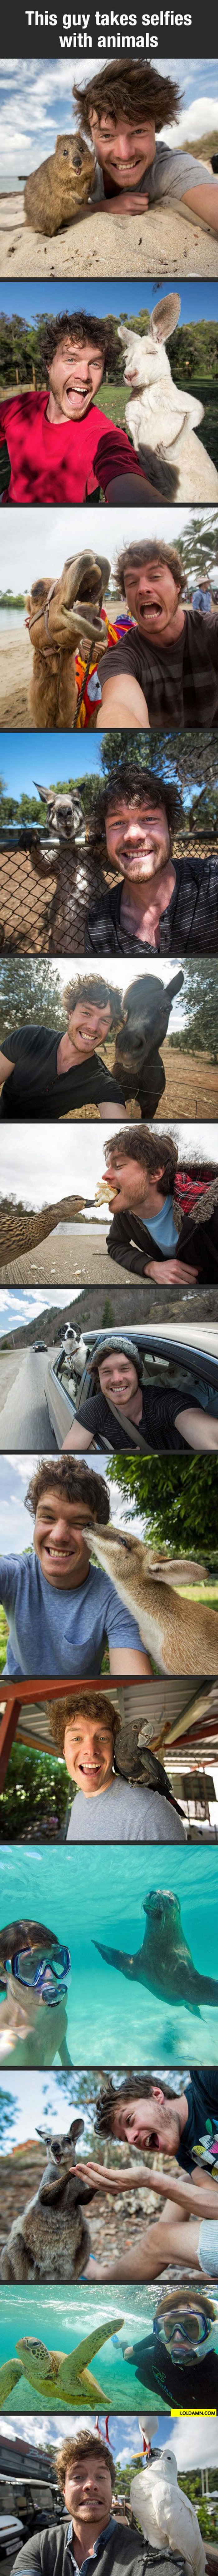 Guy Goes Travelling And Takes Selfies With Animals